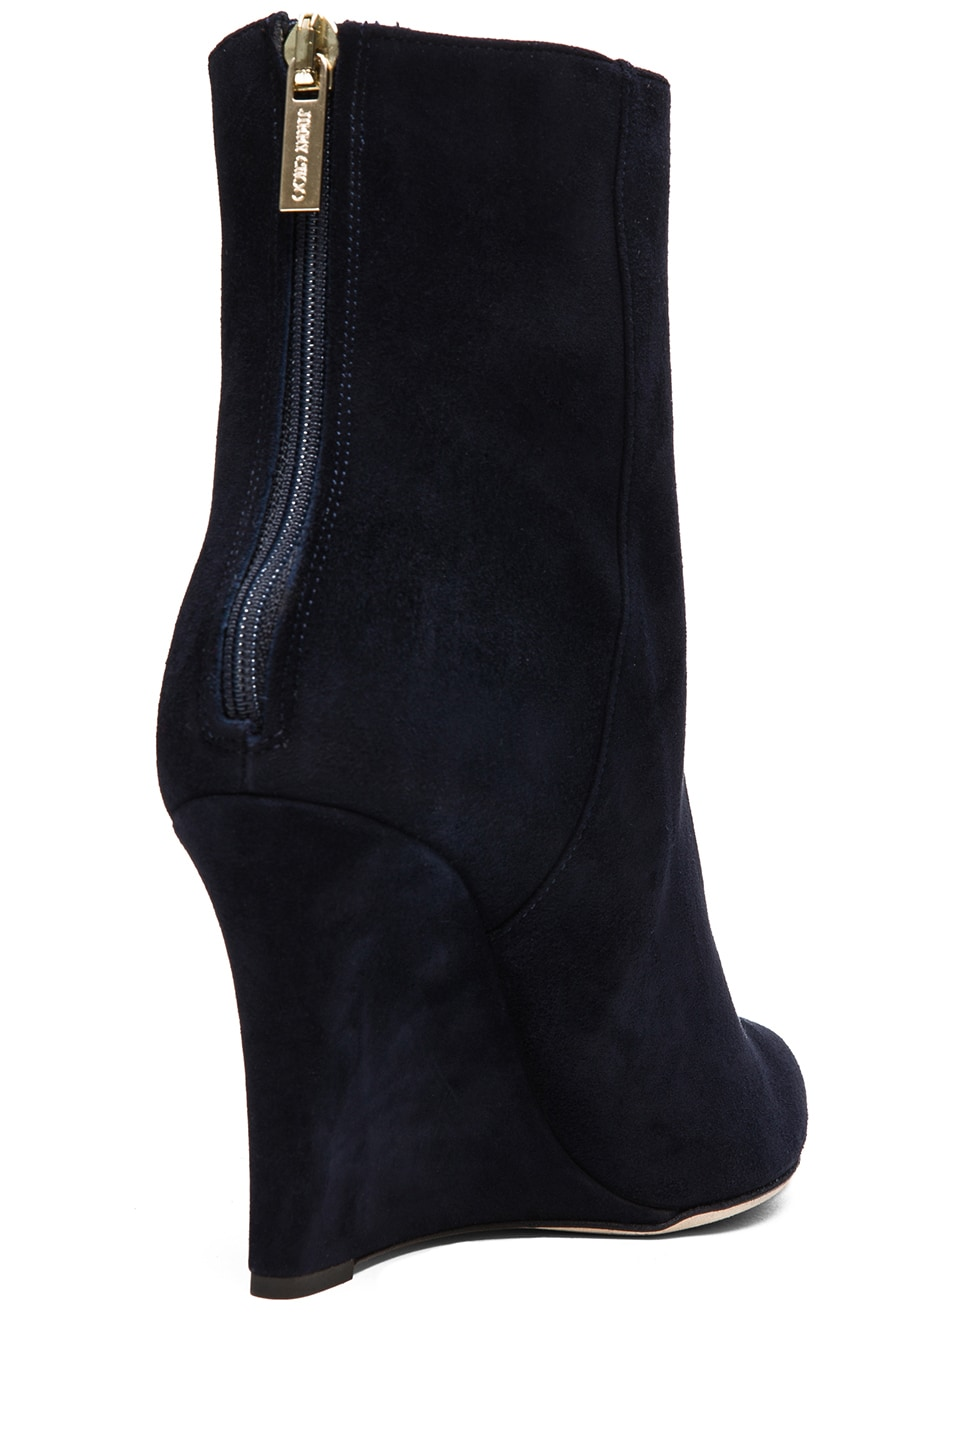 Image 3 of Jimmy Choo Mayor Suede 85mm Wedge Ankle Boot in Navy